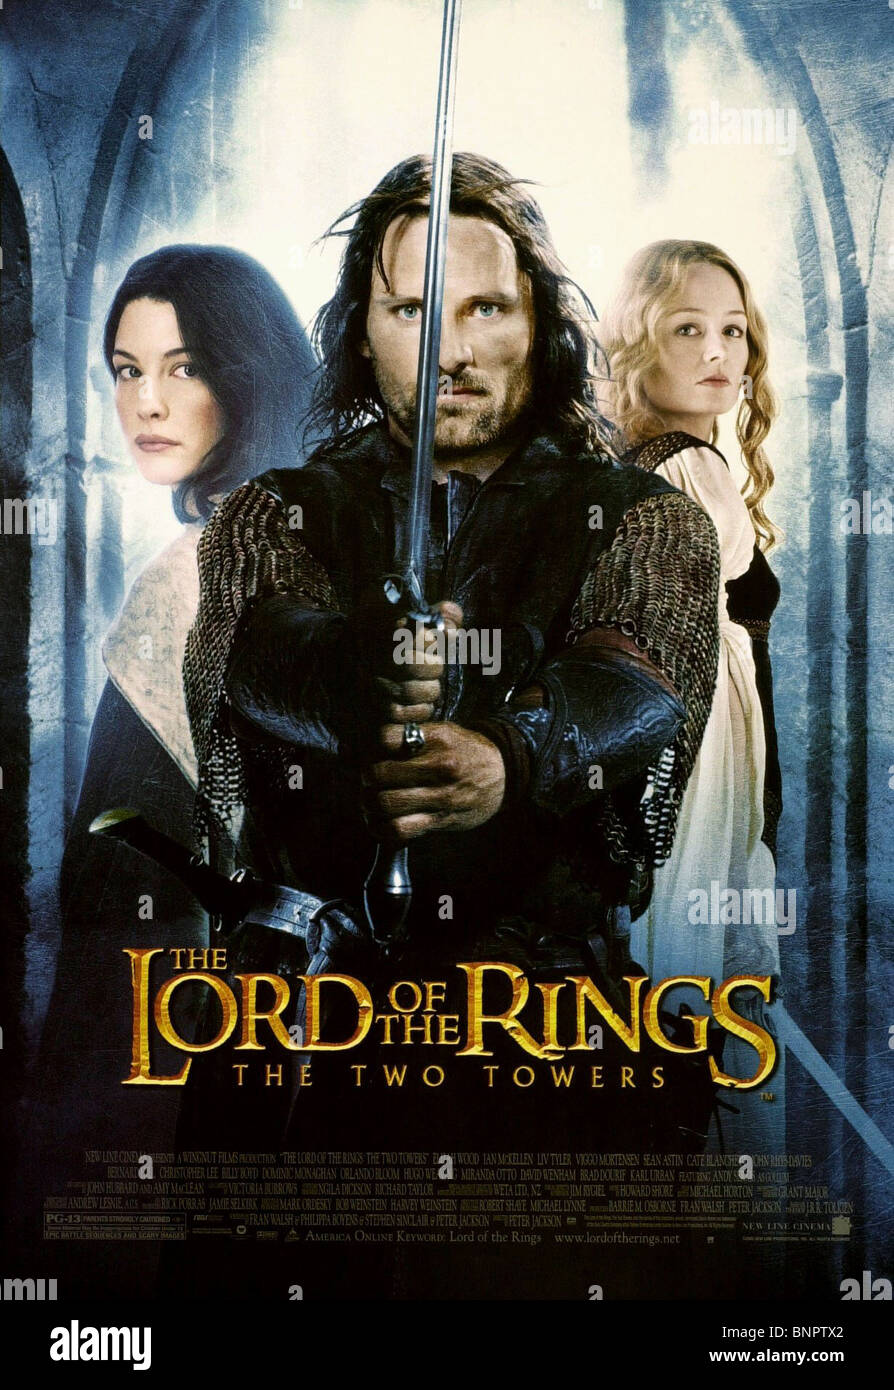 Download Lord Of The Rings The Two Towers Movie Free